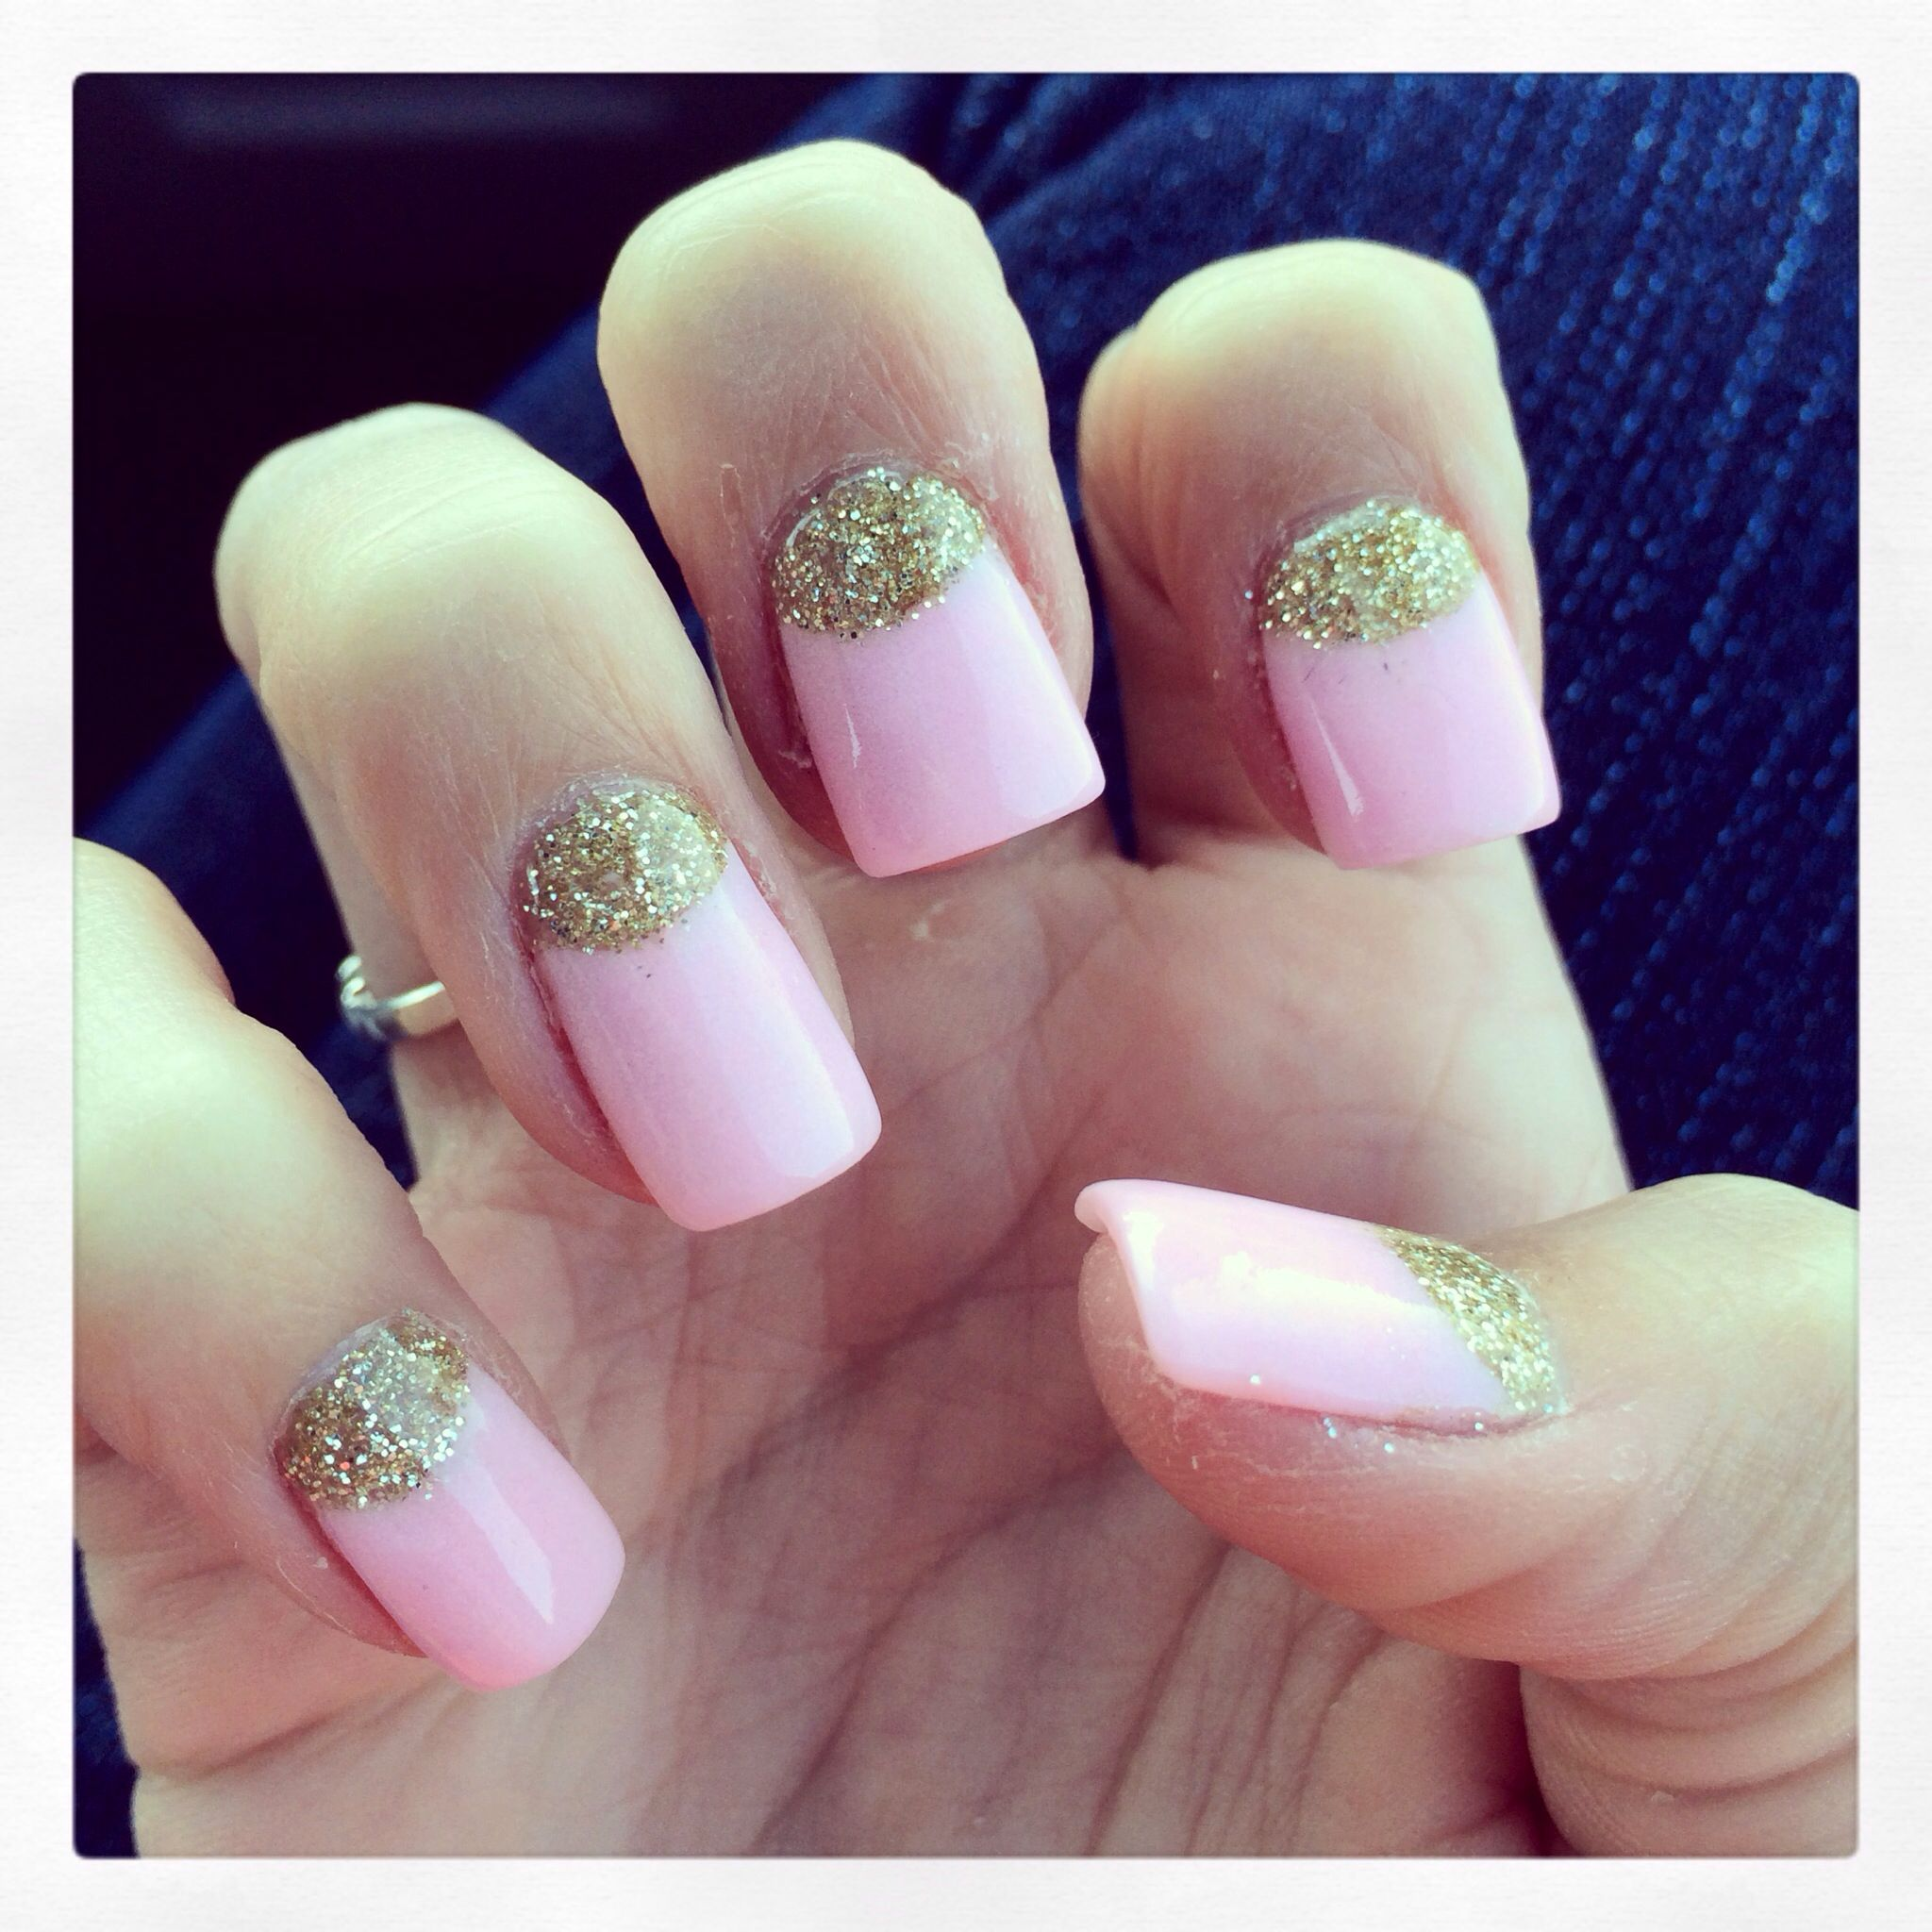 Nexgen reverse French nails with baby PINKGLITTER | Nails ...